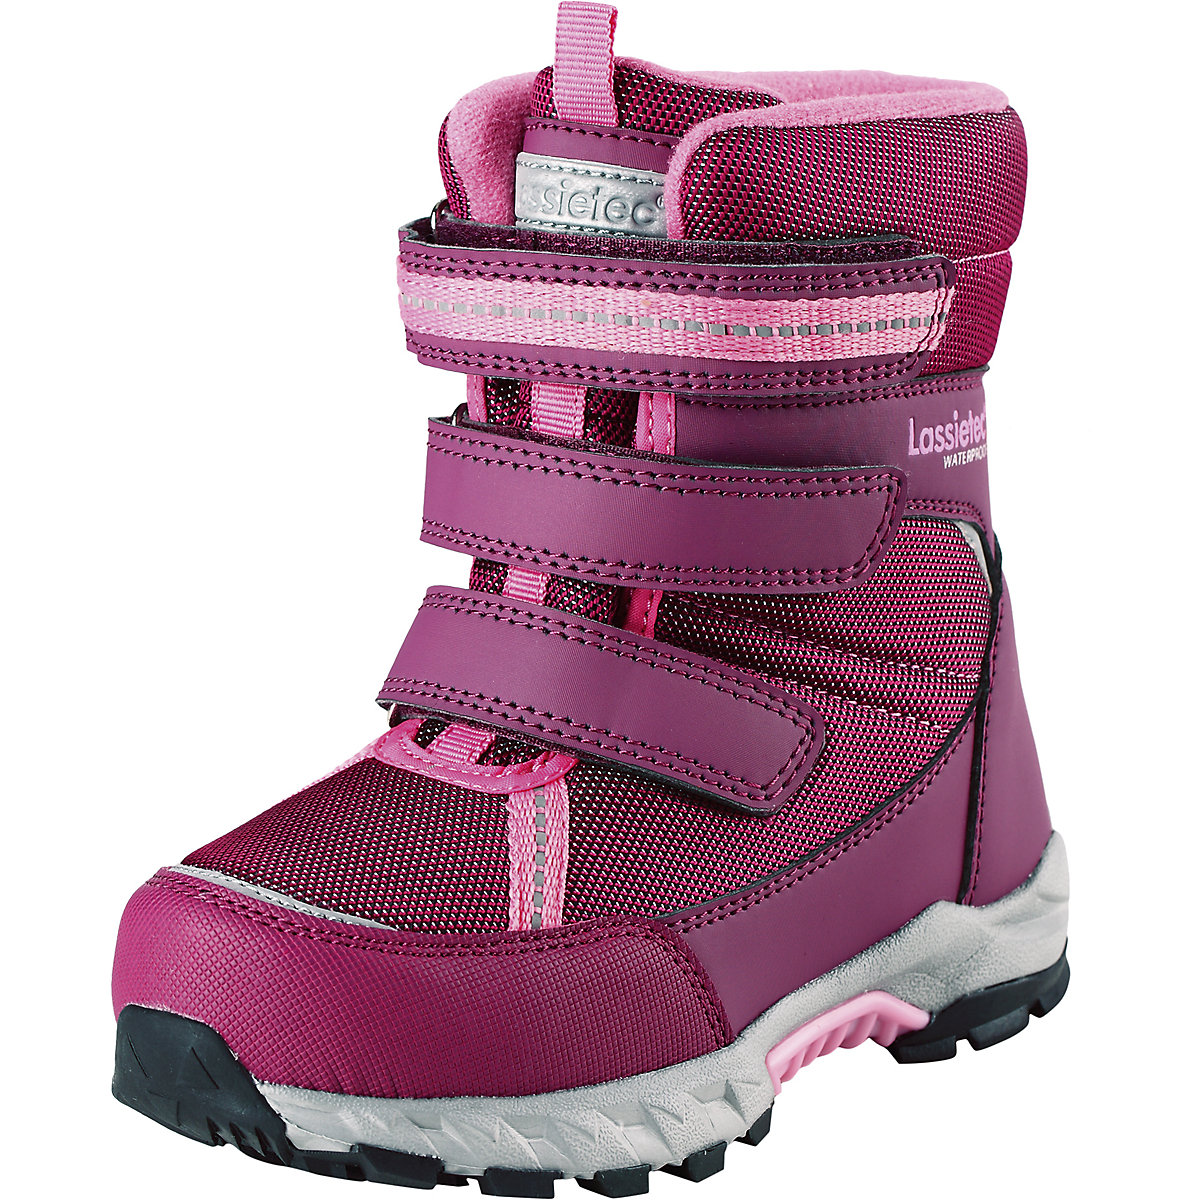 Boots LASSIE for girls 8622674 Valenki Uggi Winter shoes Children Kids boots lassie for girls 8622674 valenki uggi winter baby shoes kids